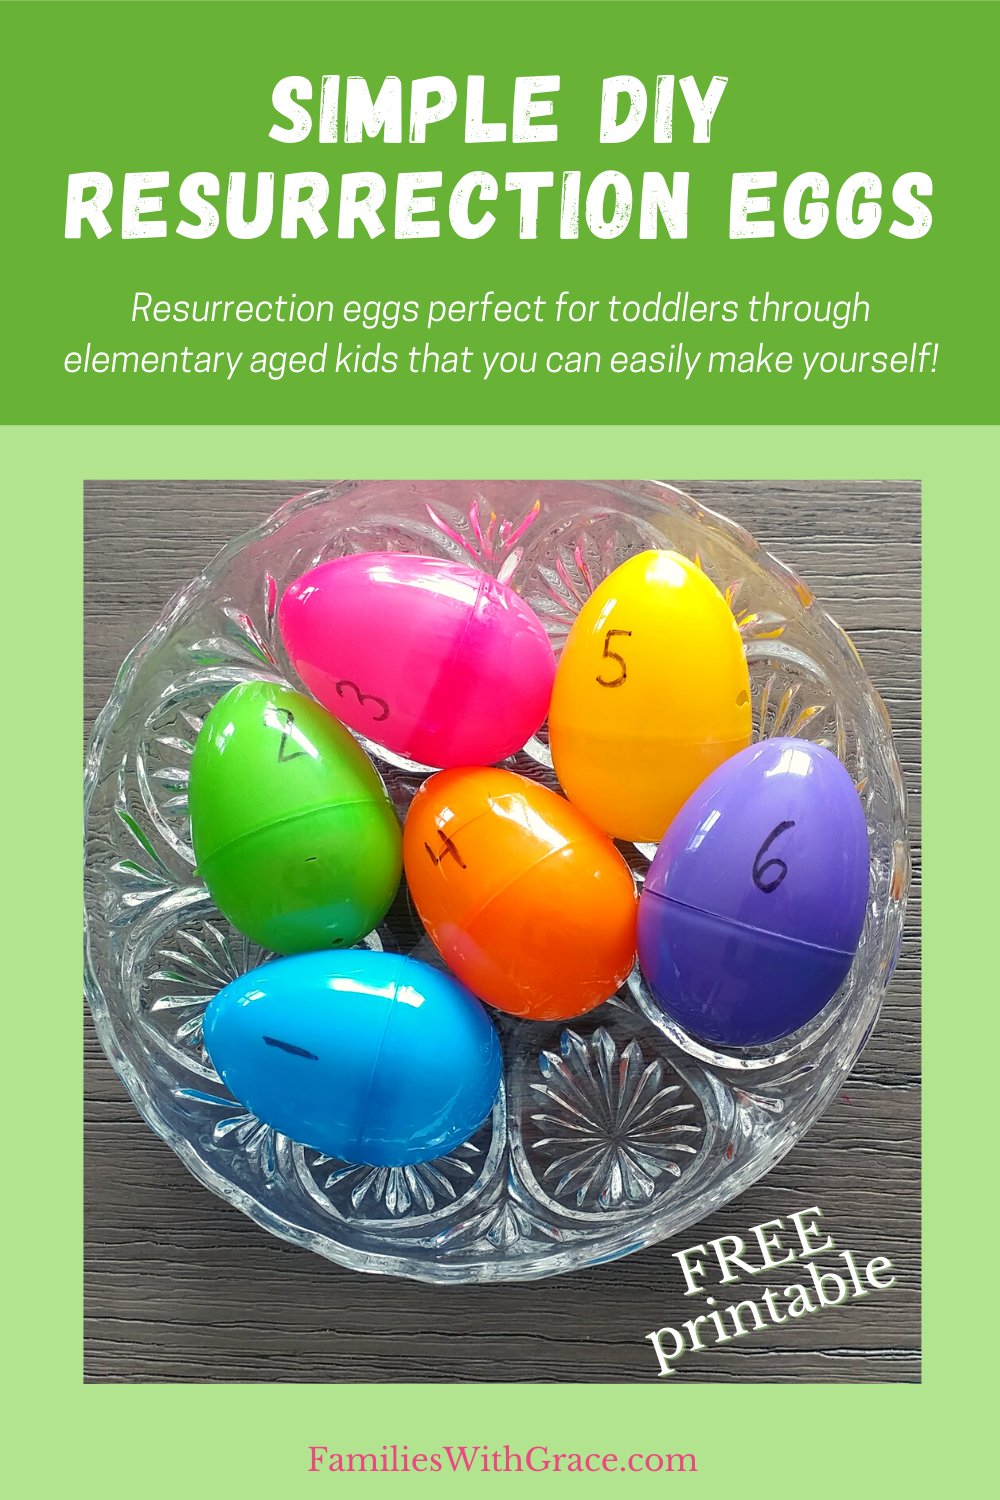 Simple DIY resurrection eggs (FREE printable!)